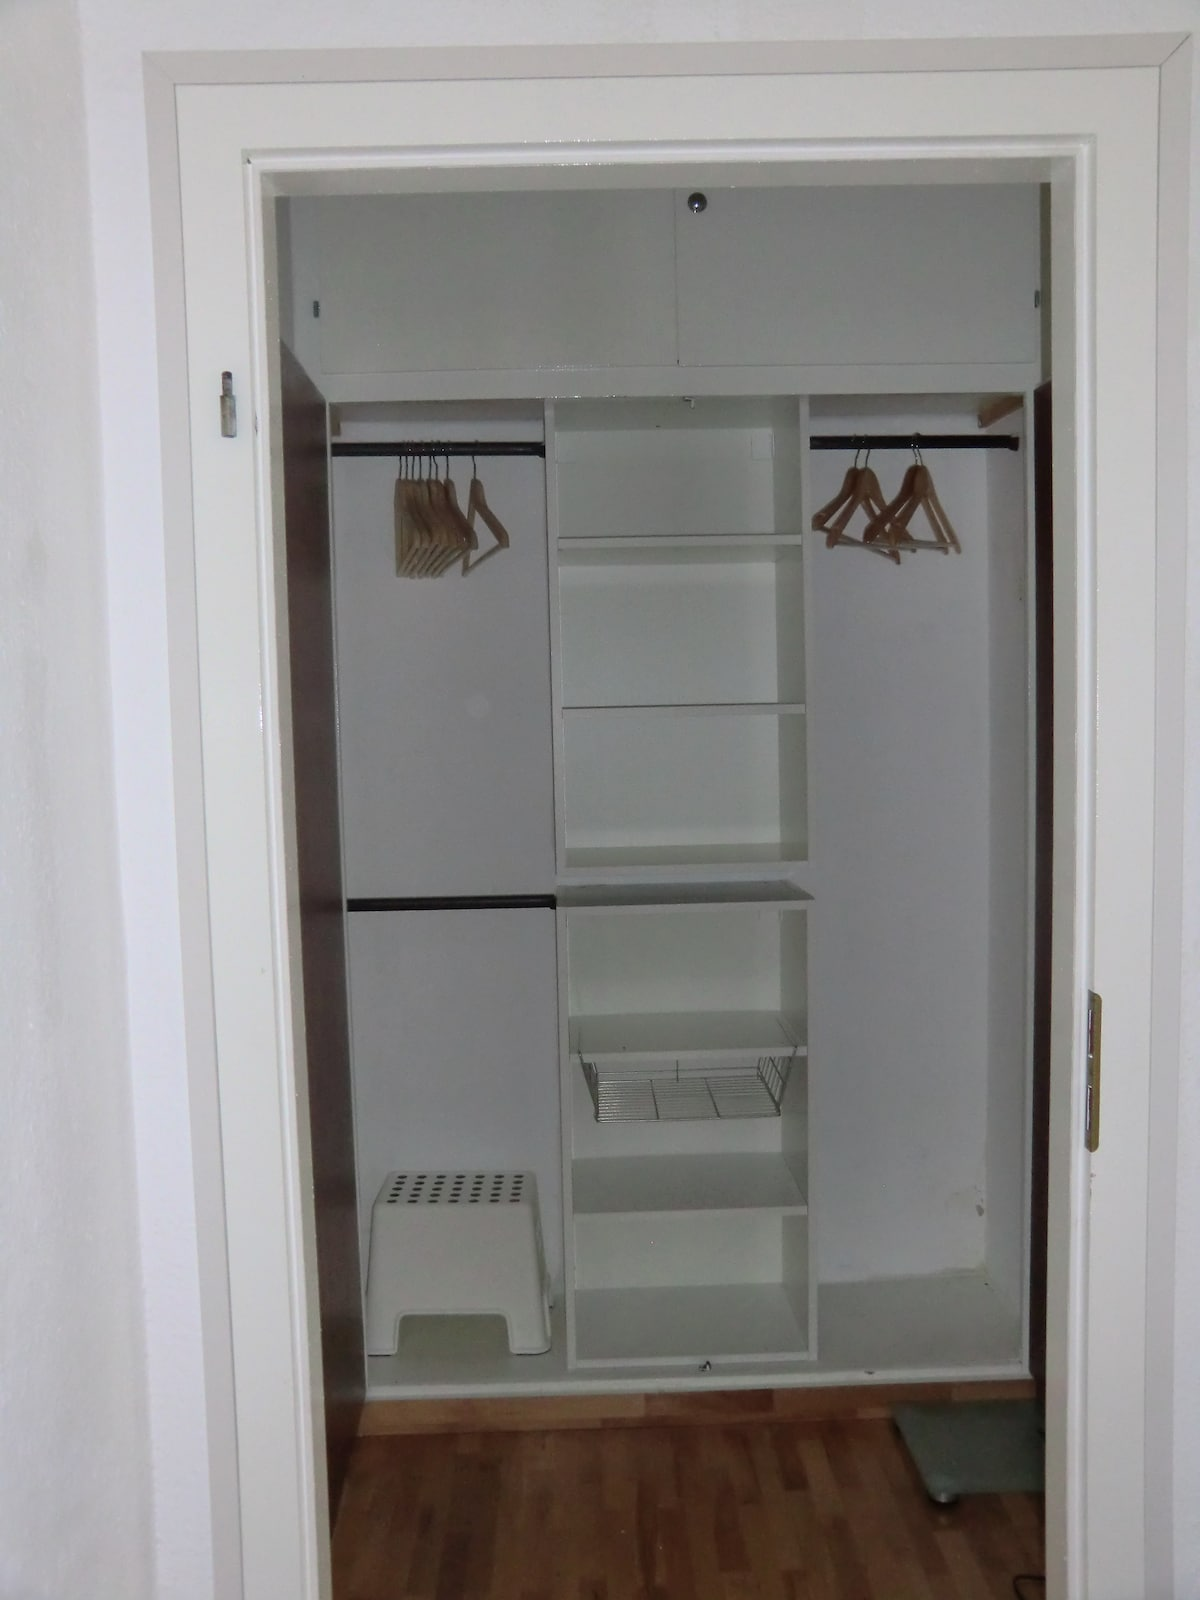 Plenty of storage space in the hallway and table for your suitcases provided.